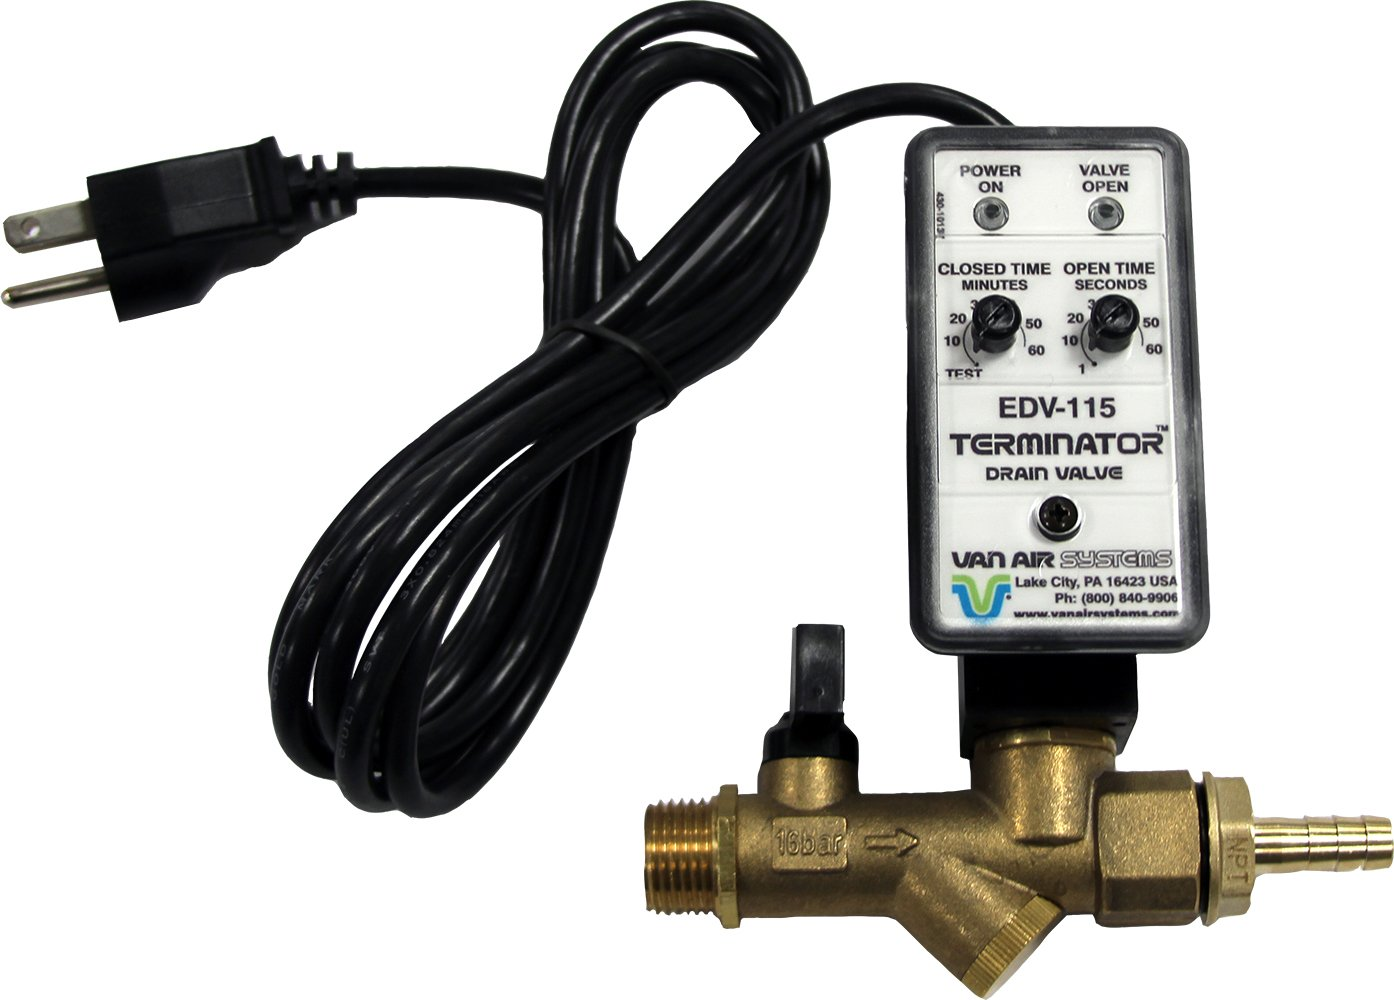 Van Air Systems 39-10507 Automatic Tank Drain for Air Compressors, 115V AC, Dual Inlet 1/2'' and 1/4'', Y-Strainer, Test Mode, Isolation Valve, 3/8'' Hose Barb Fitting, 6' Power Cord